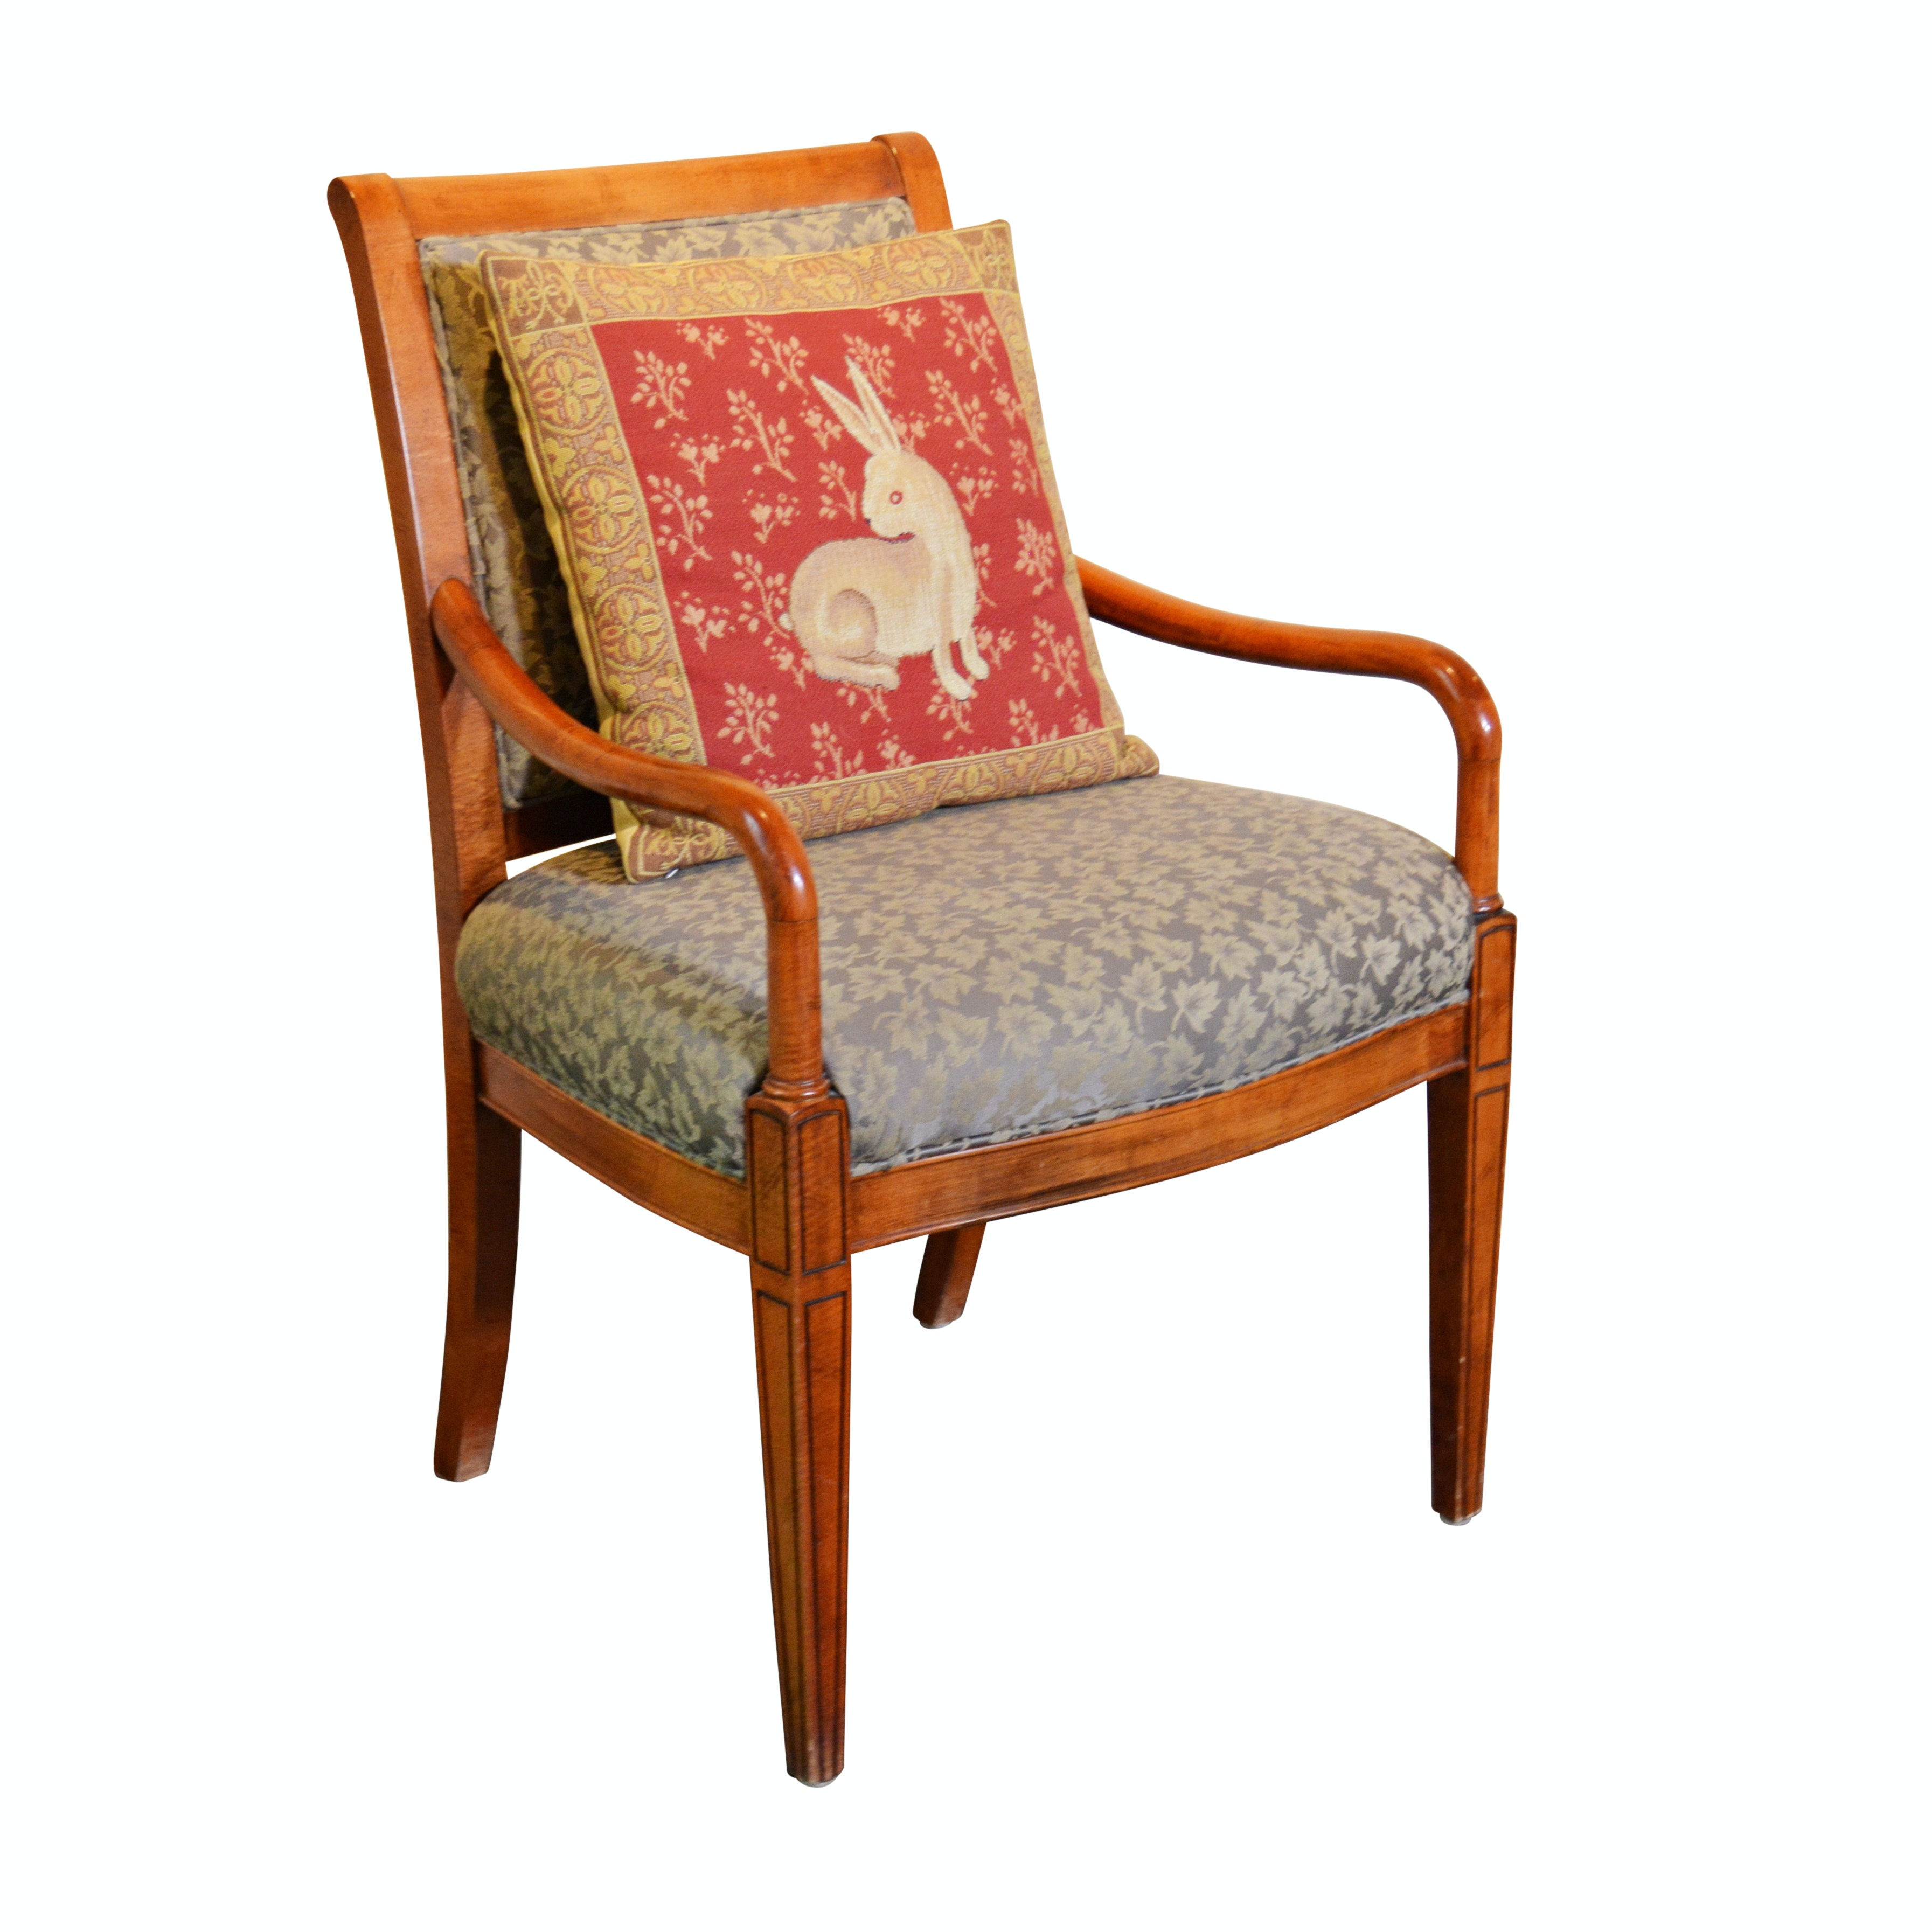 Leaf Upholstered Armchair and J. Pansu Rabbit Pillow Late 20th Century